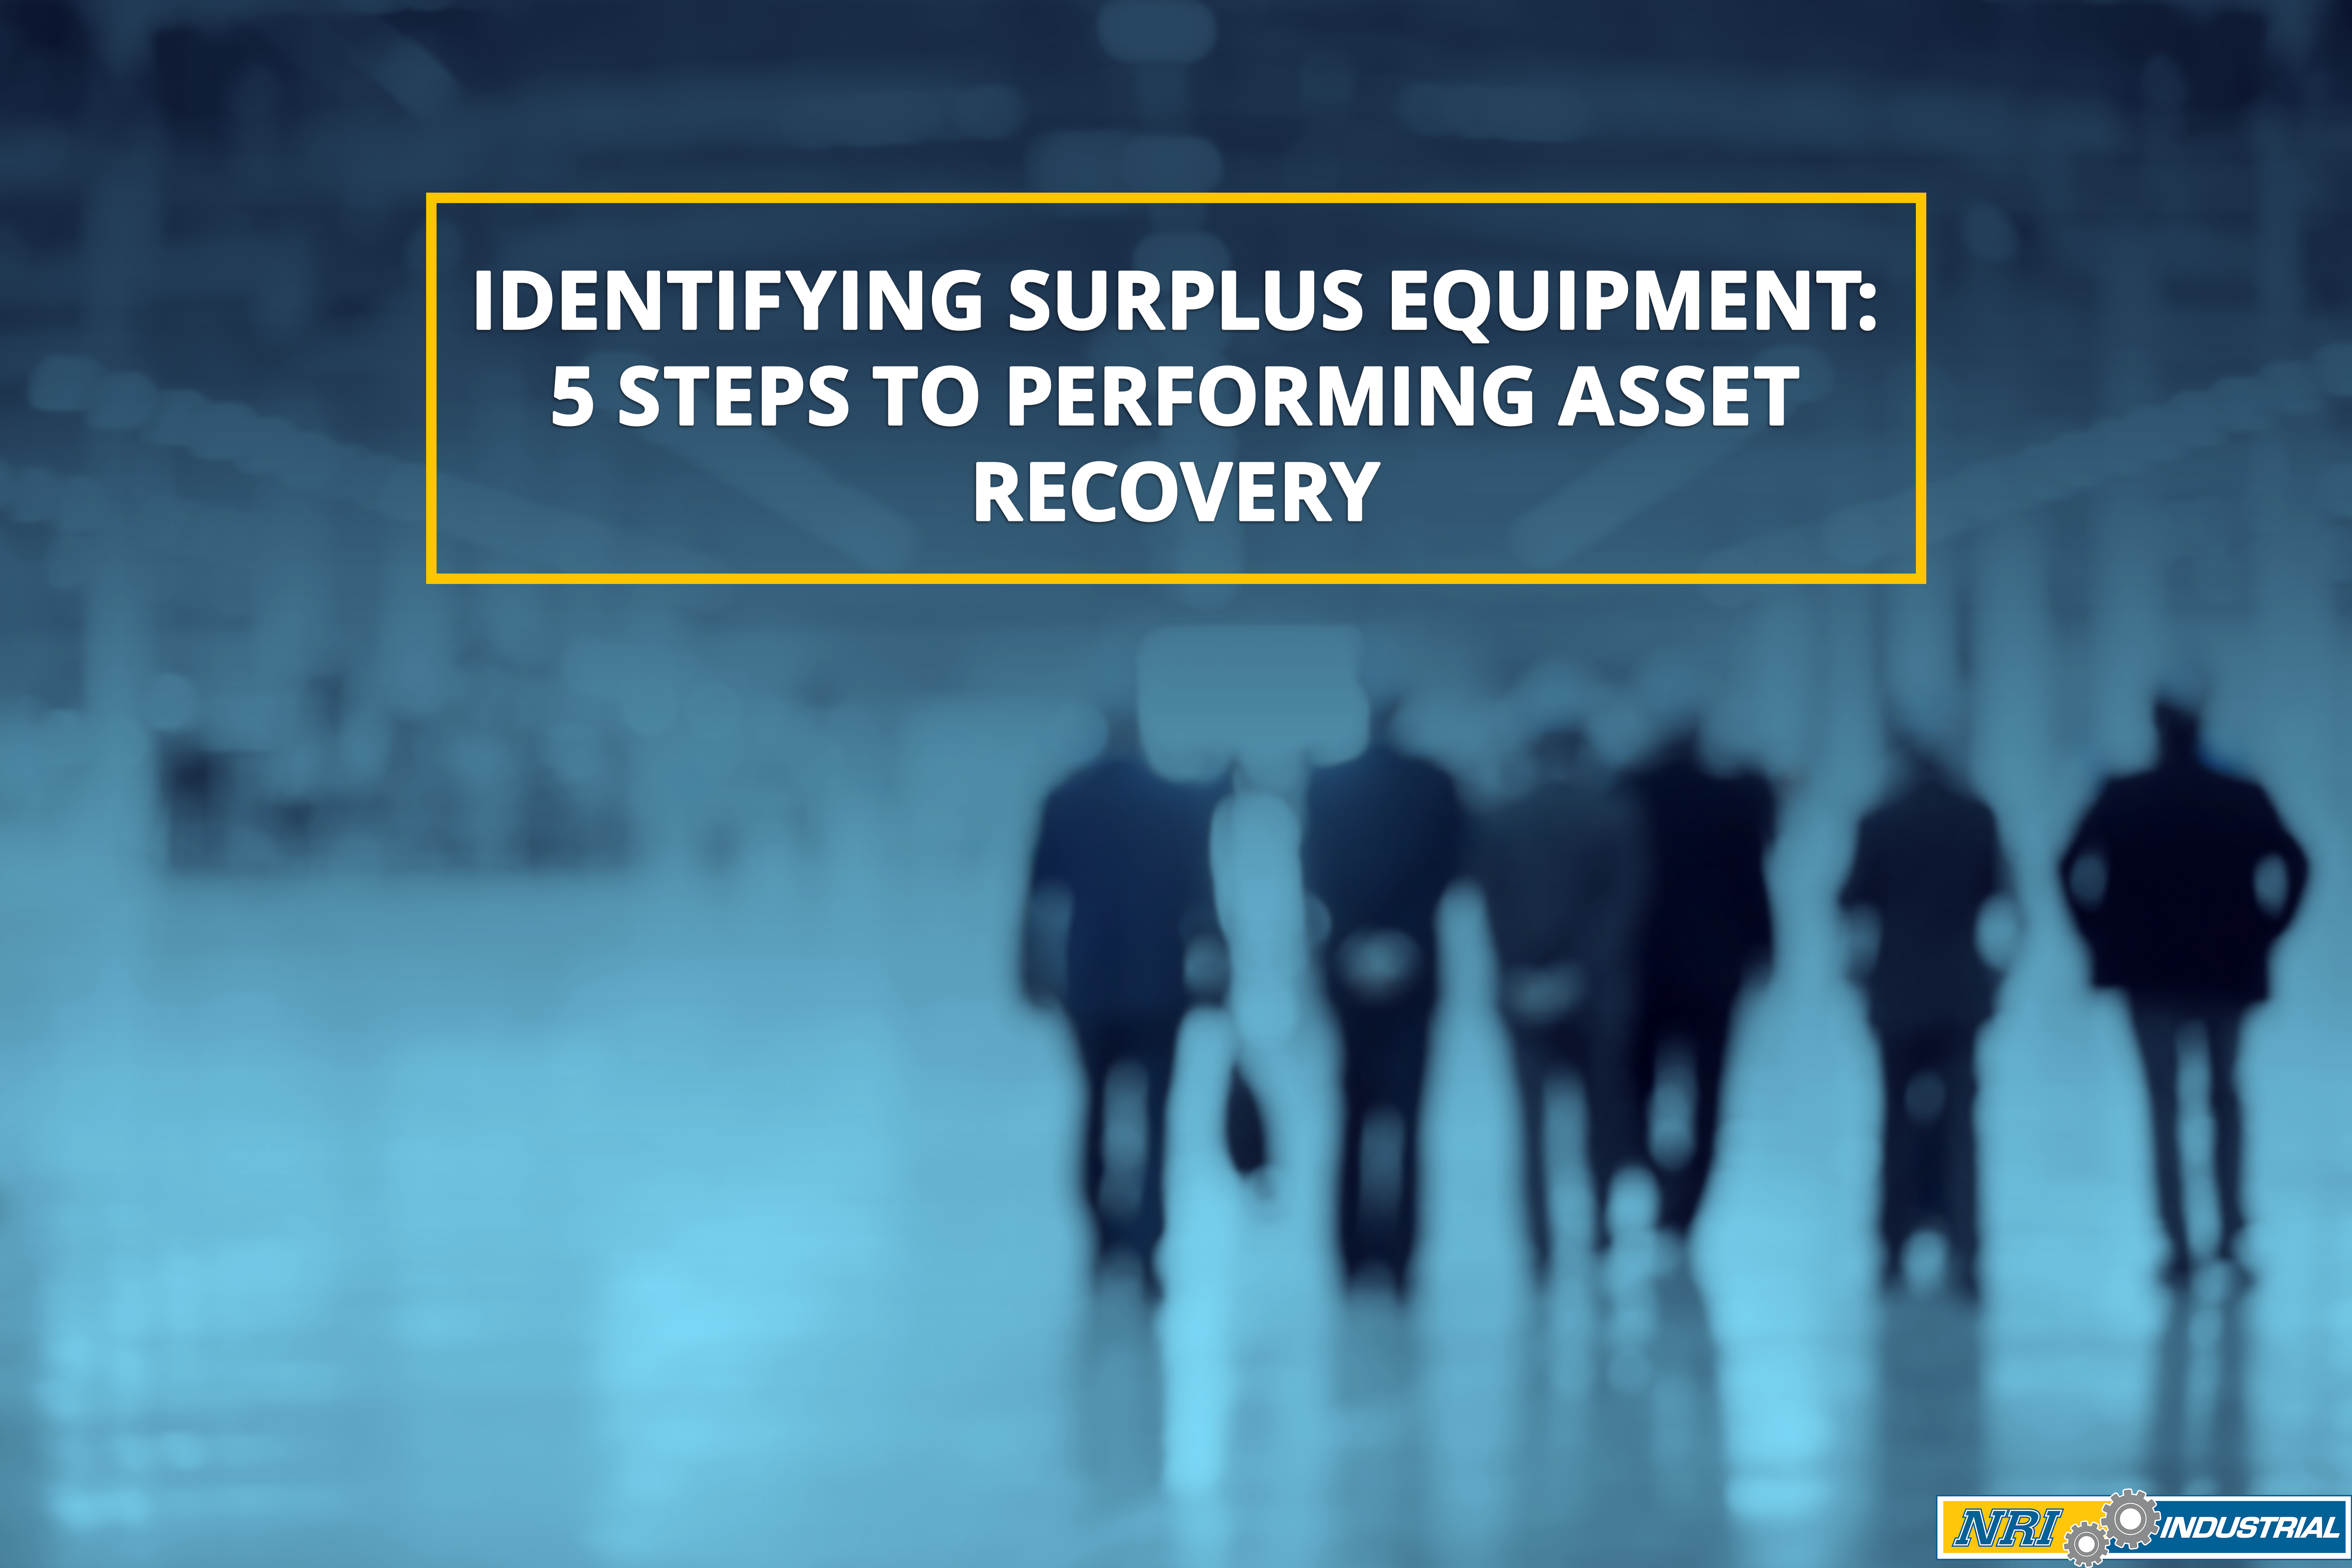 Identifying Surplus Equipment 5 Steps To Performing Asset Recovery